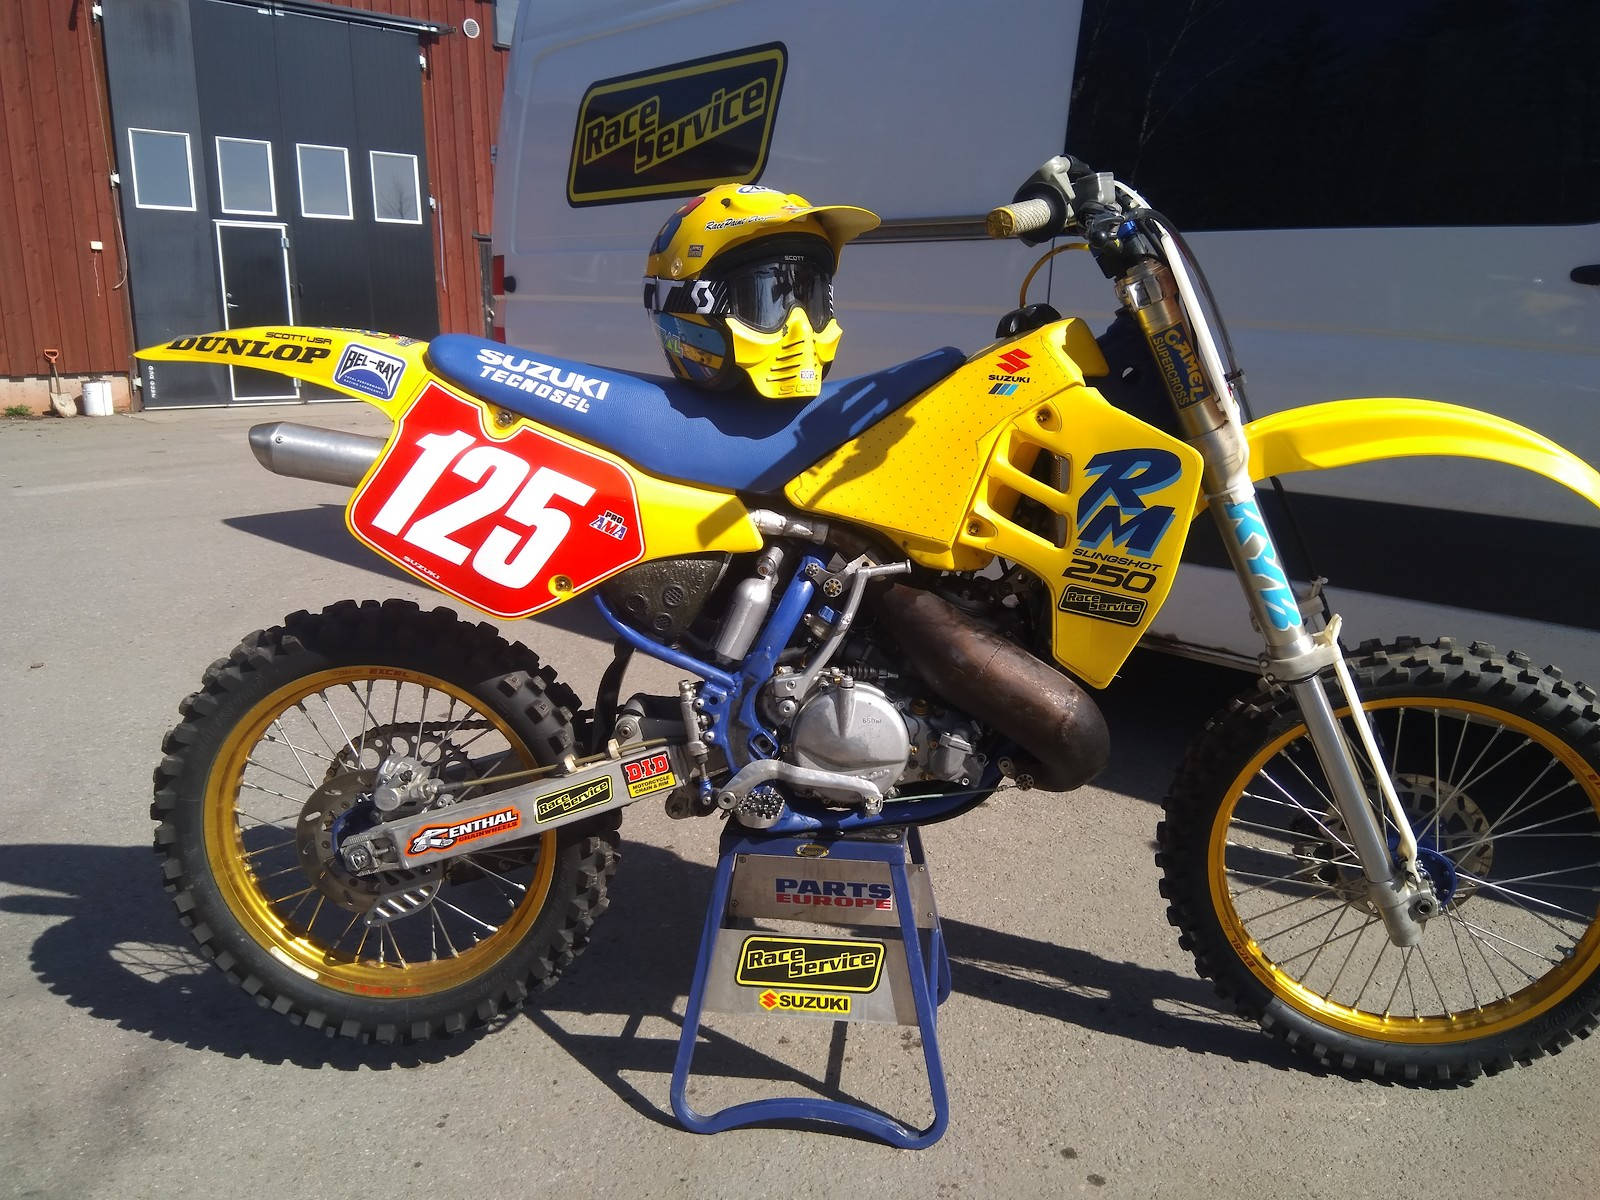 Ready to 2018 Classic motocross cup Finland. Back to 1990 style. New RaceService engine.